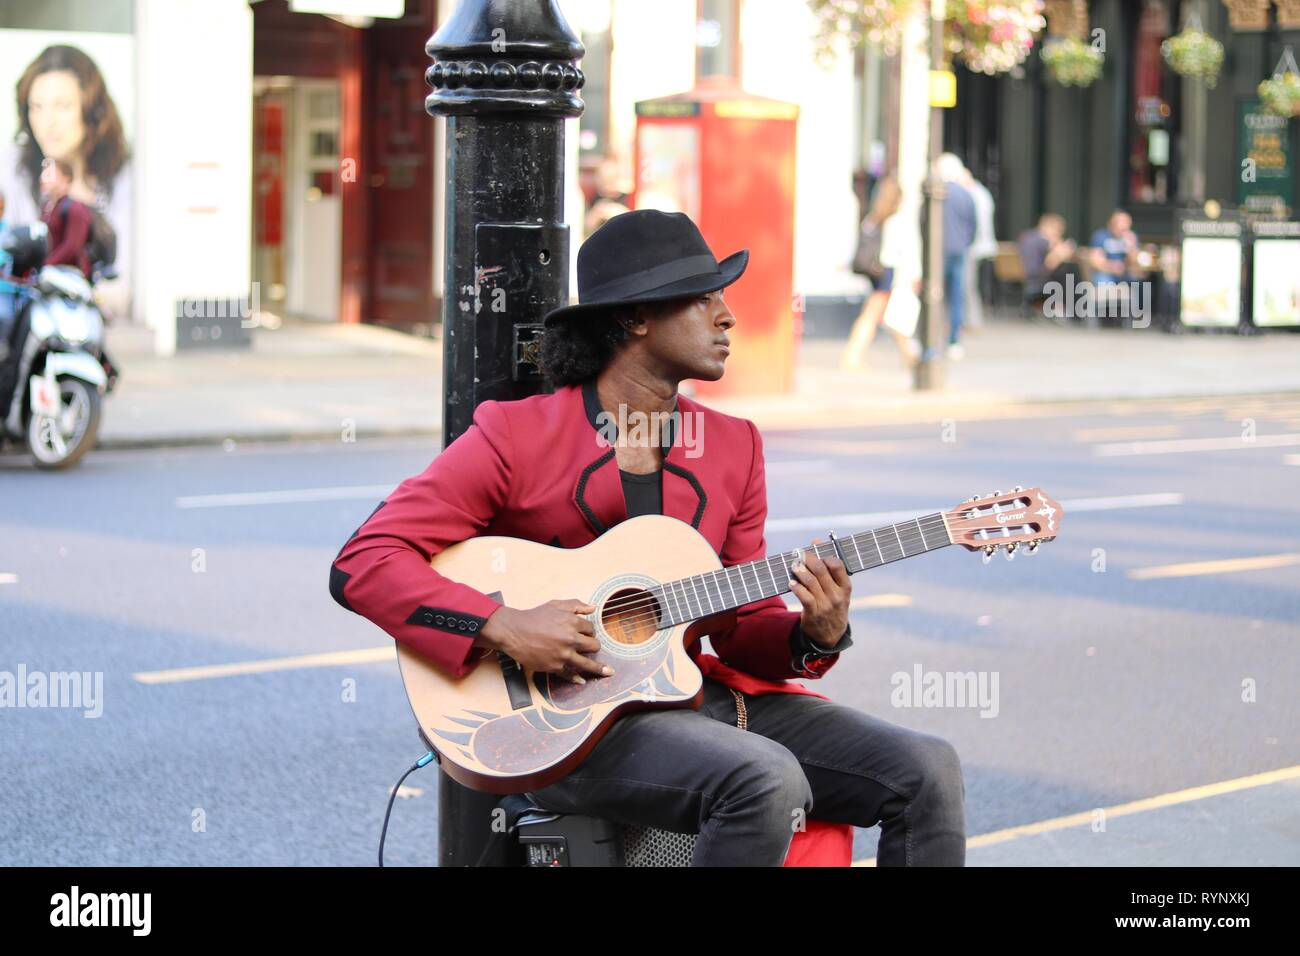 Busker sitting at foot of lamp post playing guitar Stock